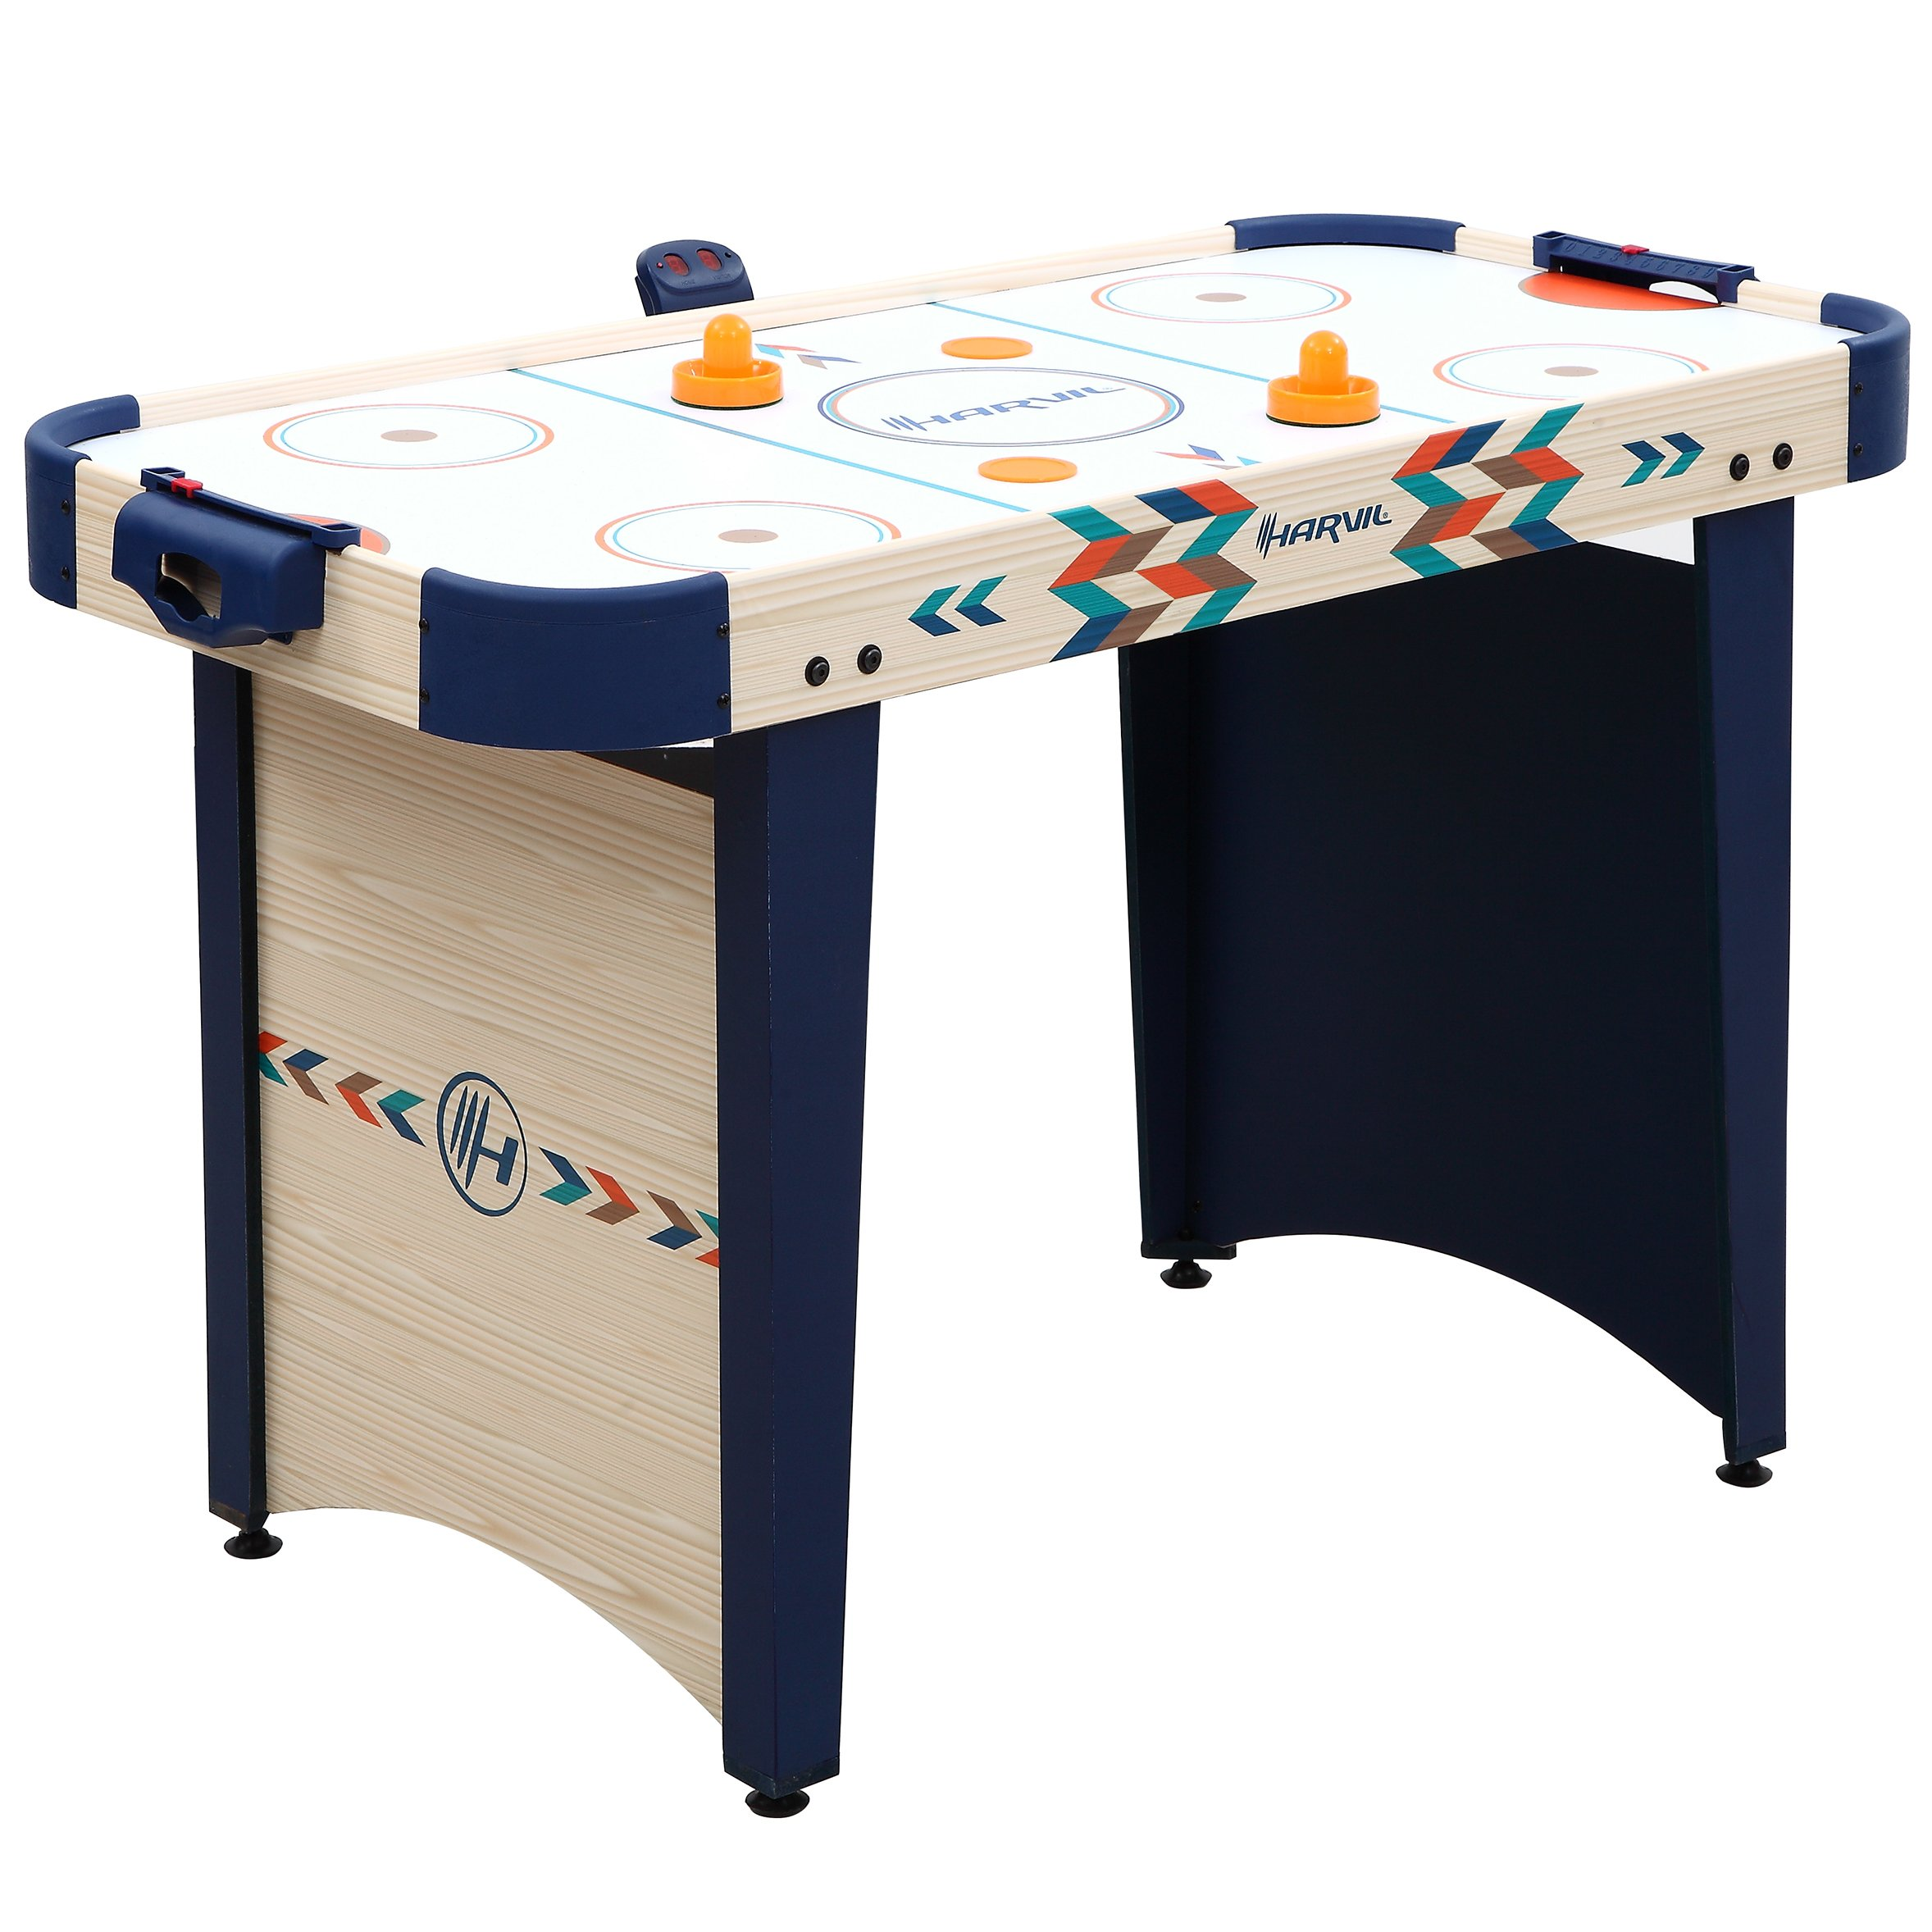 Harvil 4 Foot Air Hockey Game Table for Kids and Adults with Electronic Scorer, Free Pushers and Pucks by Harvil